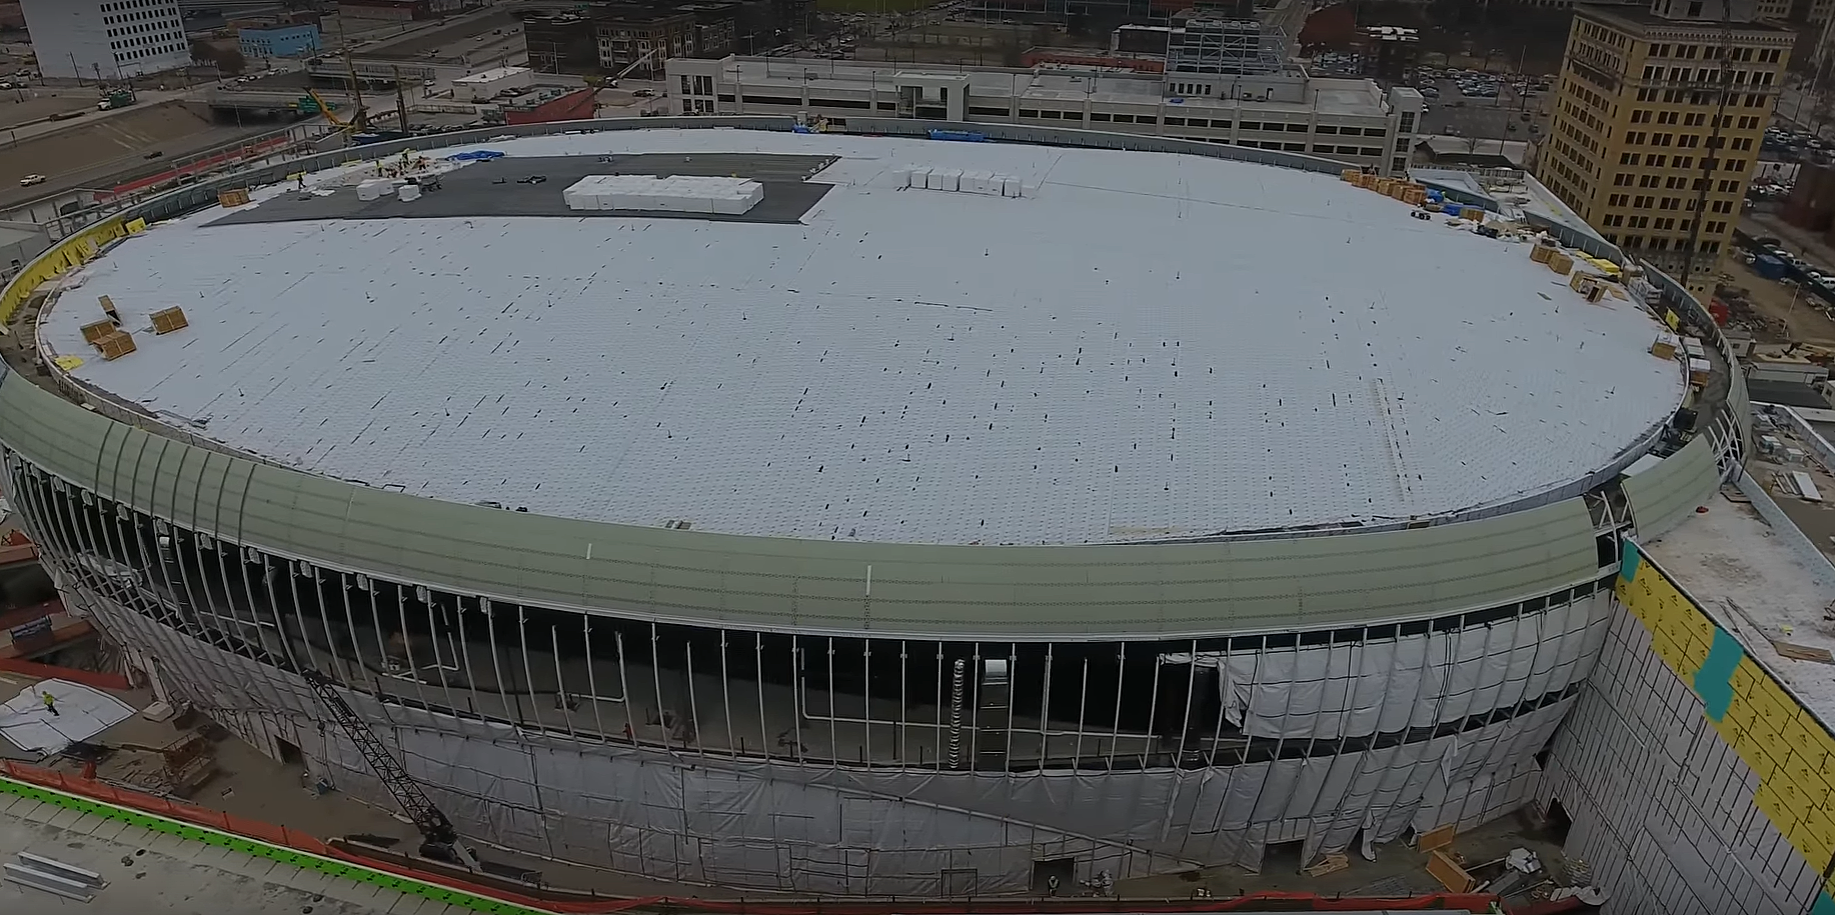 New drone footage shows progress on little caesars arena for Motor city casino little caesars